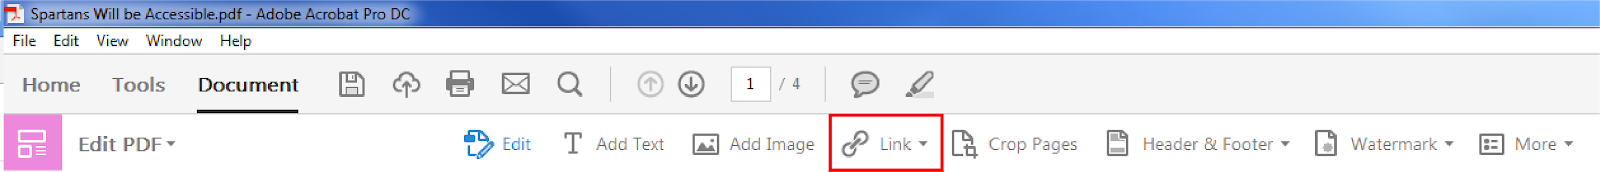 Top home toolbar under Document tab. Drop down menu from Link section/icon